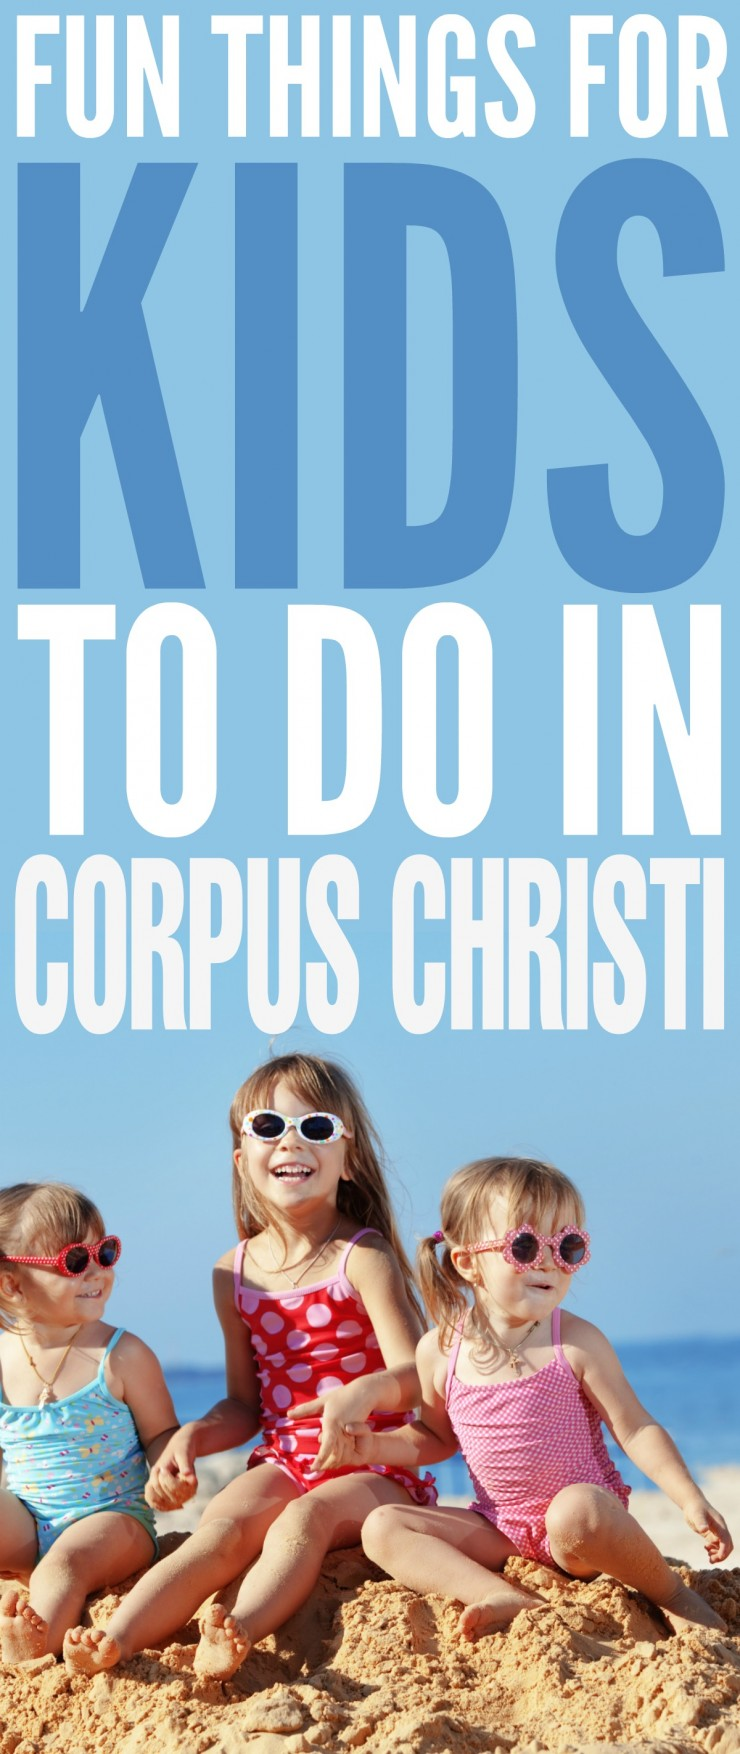 No matter if you want to spend your time indoors visiting things like museums and aquariums, or outdoors visiting islands or state parks, Corpus Christi has something for everyone.